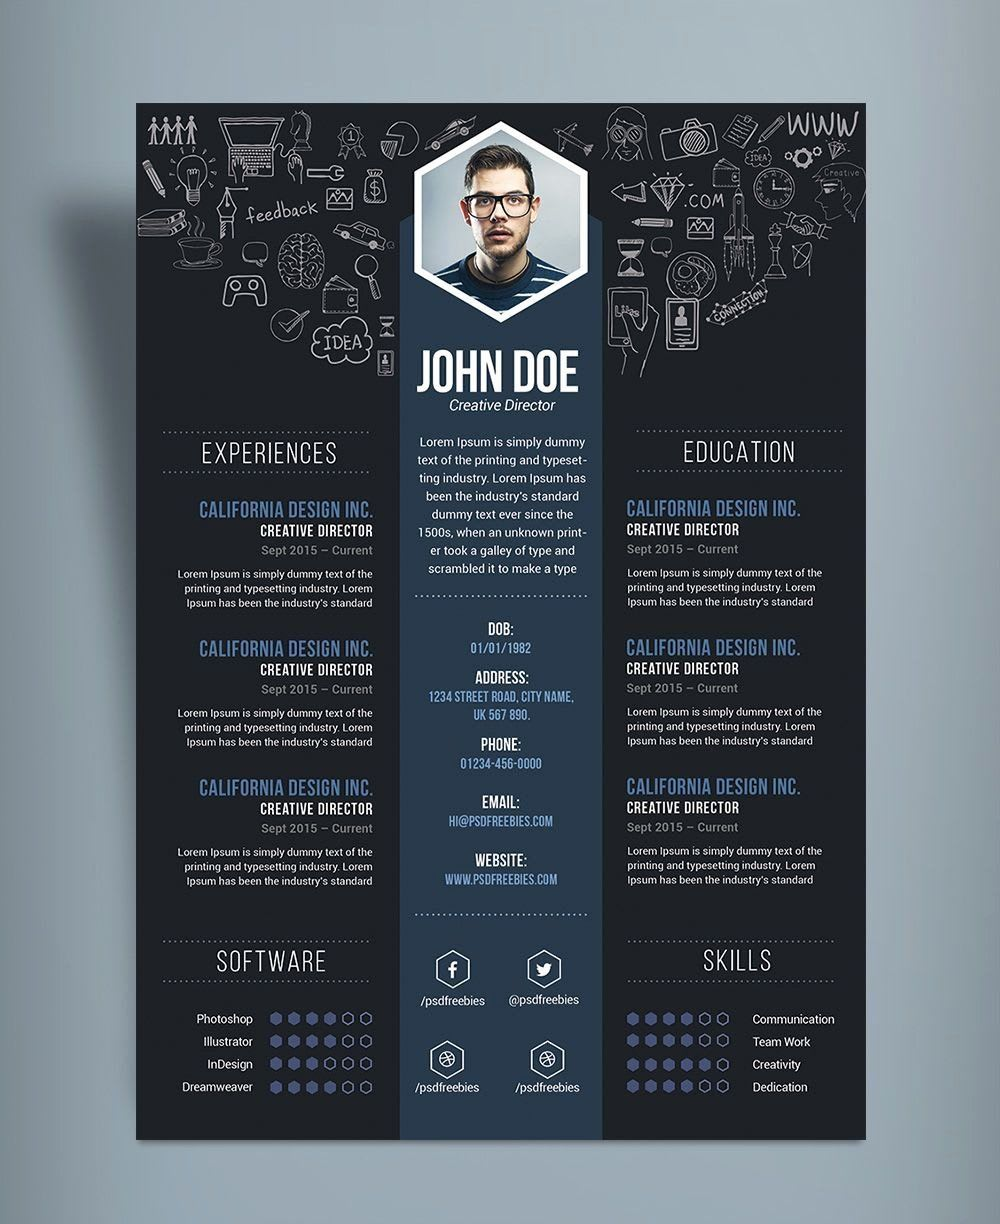 Design Professional Resume Cover Letter Template By Branding Acura Fiverr